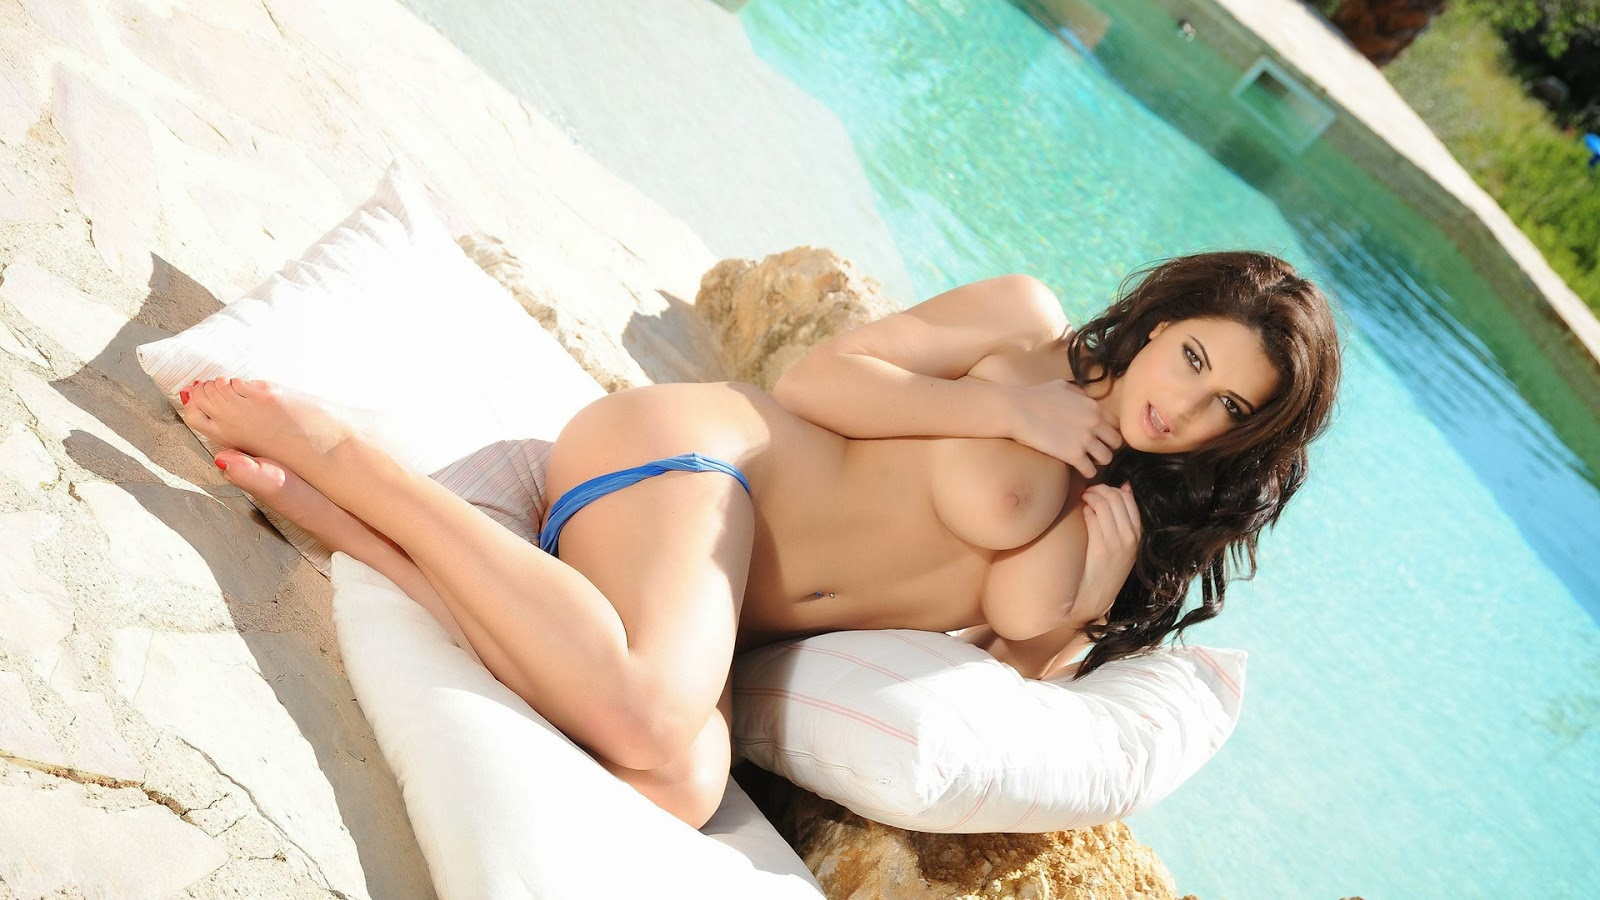 Charlotte Springer Big Tits Brunette Wallpaper